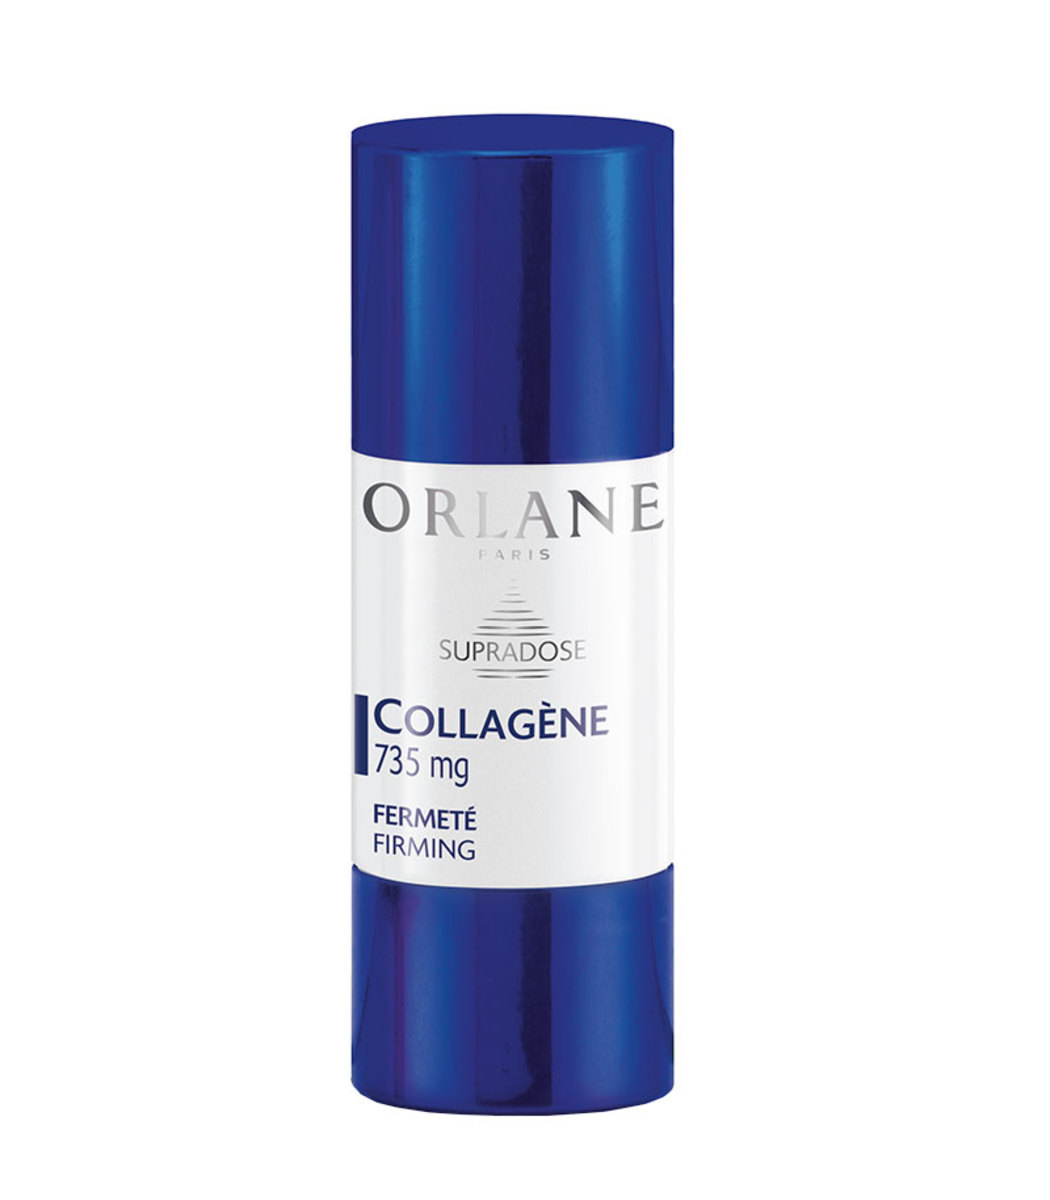 ORLANE Collagene Supradose 0.2 oz.